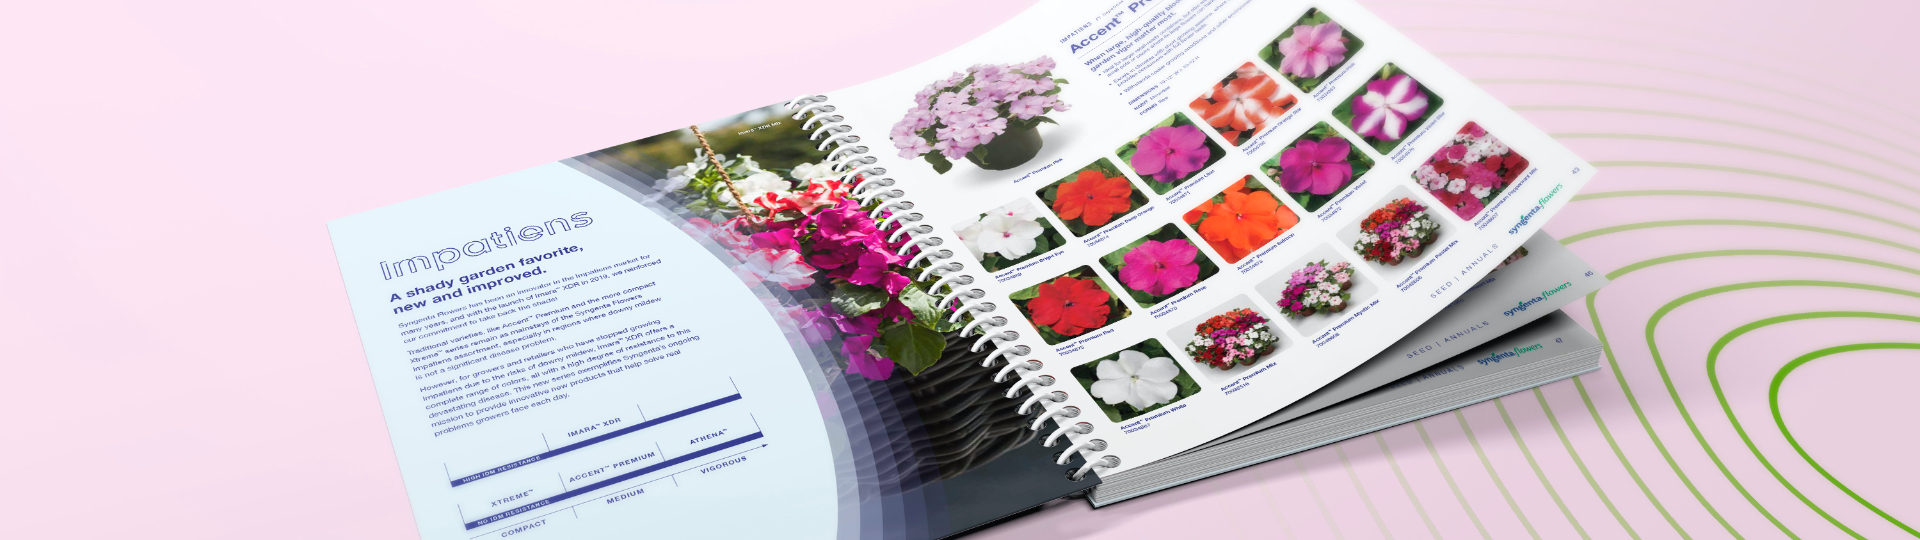 Inside pages of Syngenta Flowers 2020-2021 annual catalog